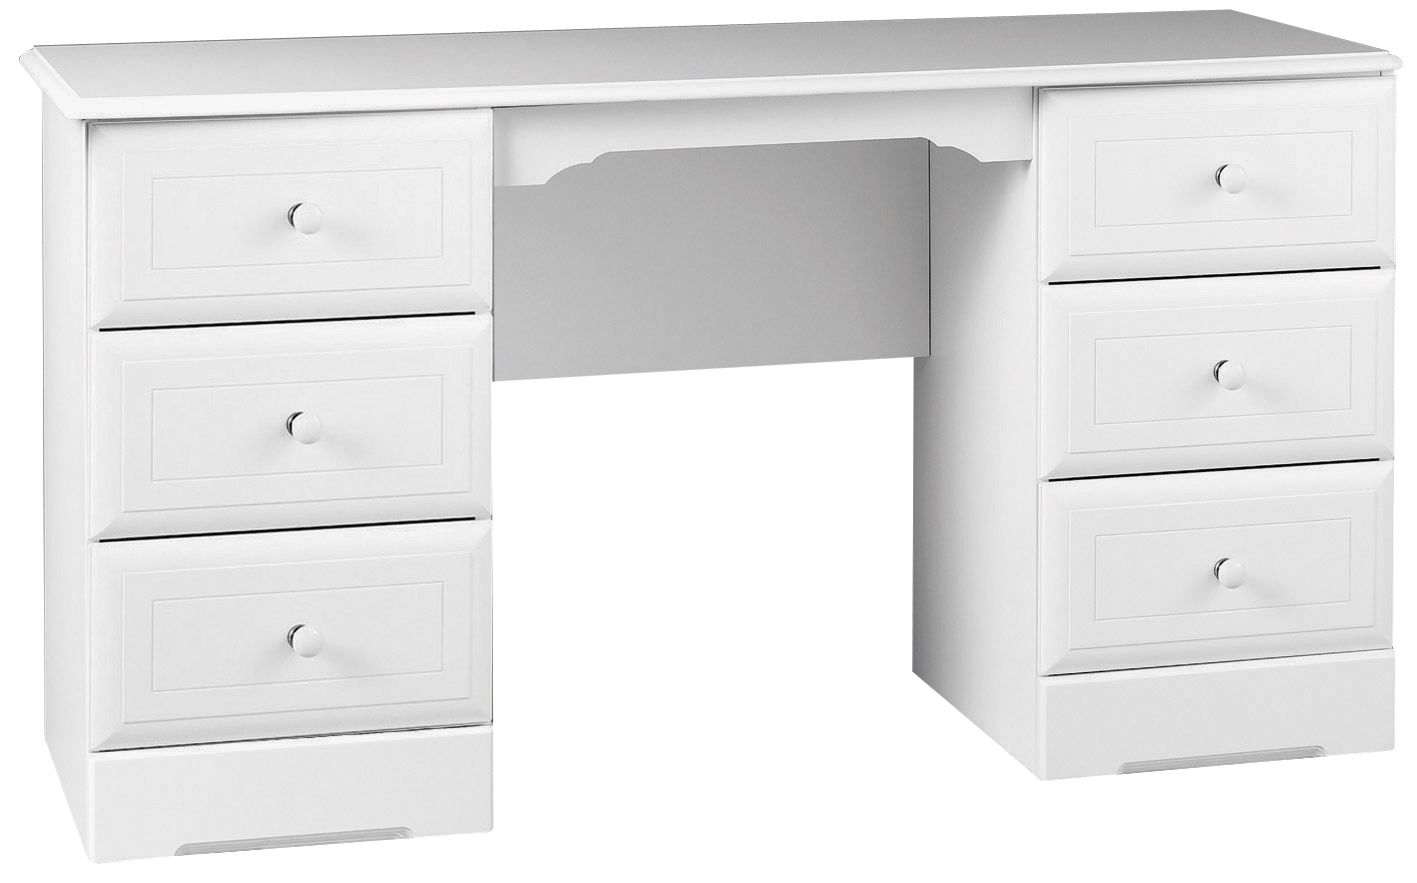 drawers swarovski product crystals mirrored with drawer tuscany dressing table